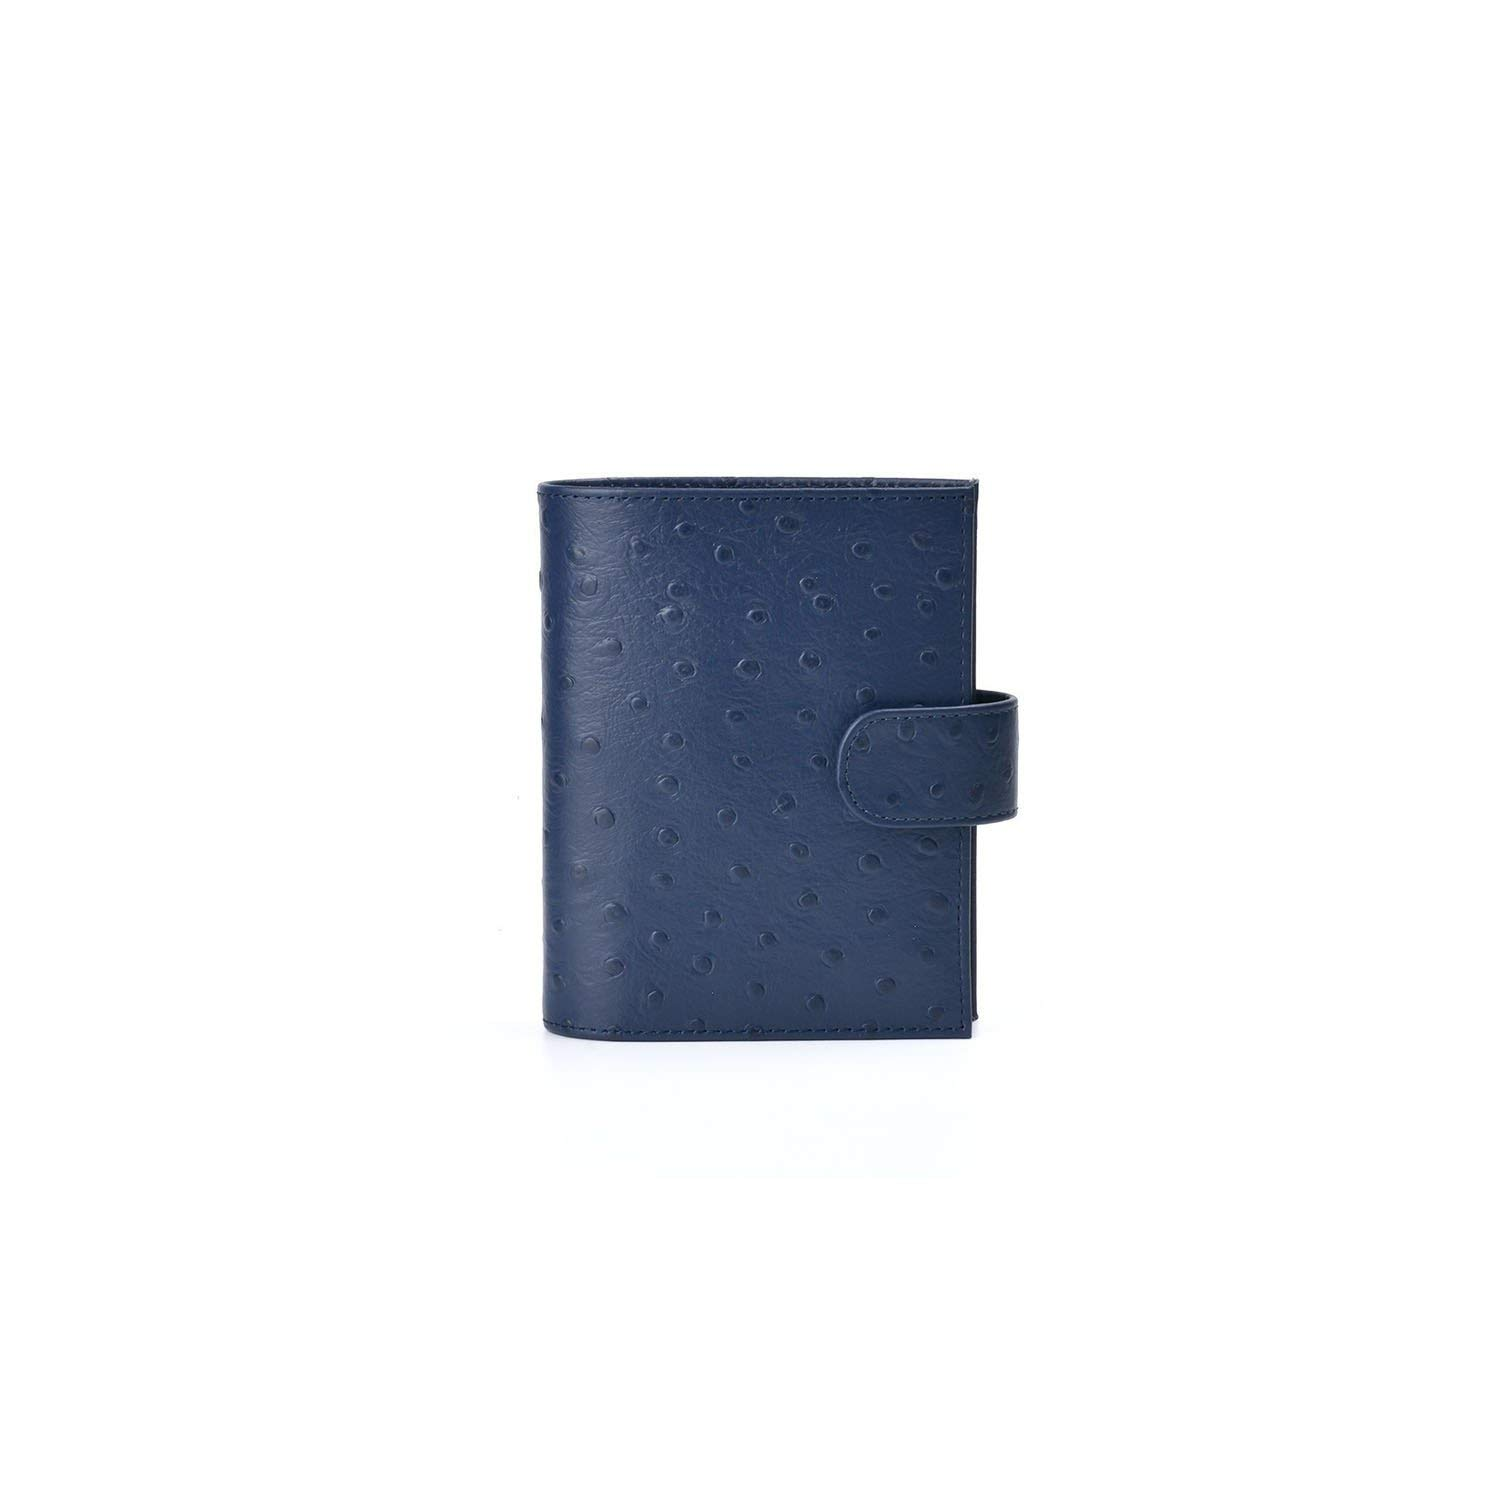 Amazon.com : Notebook Leather Rings Notebook Brass Binder ...